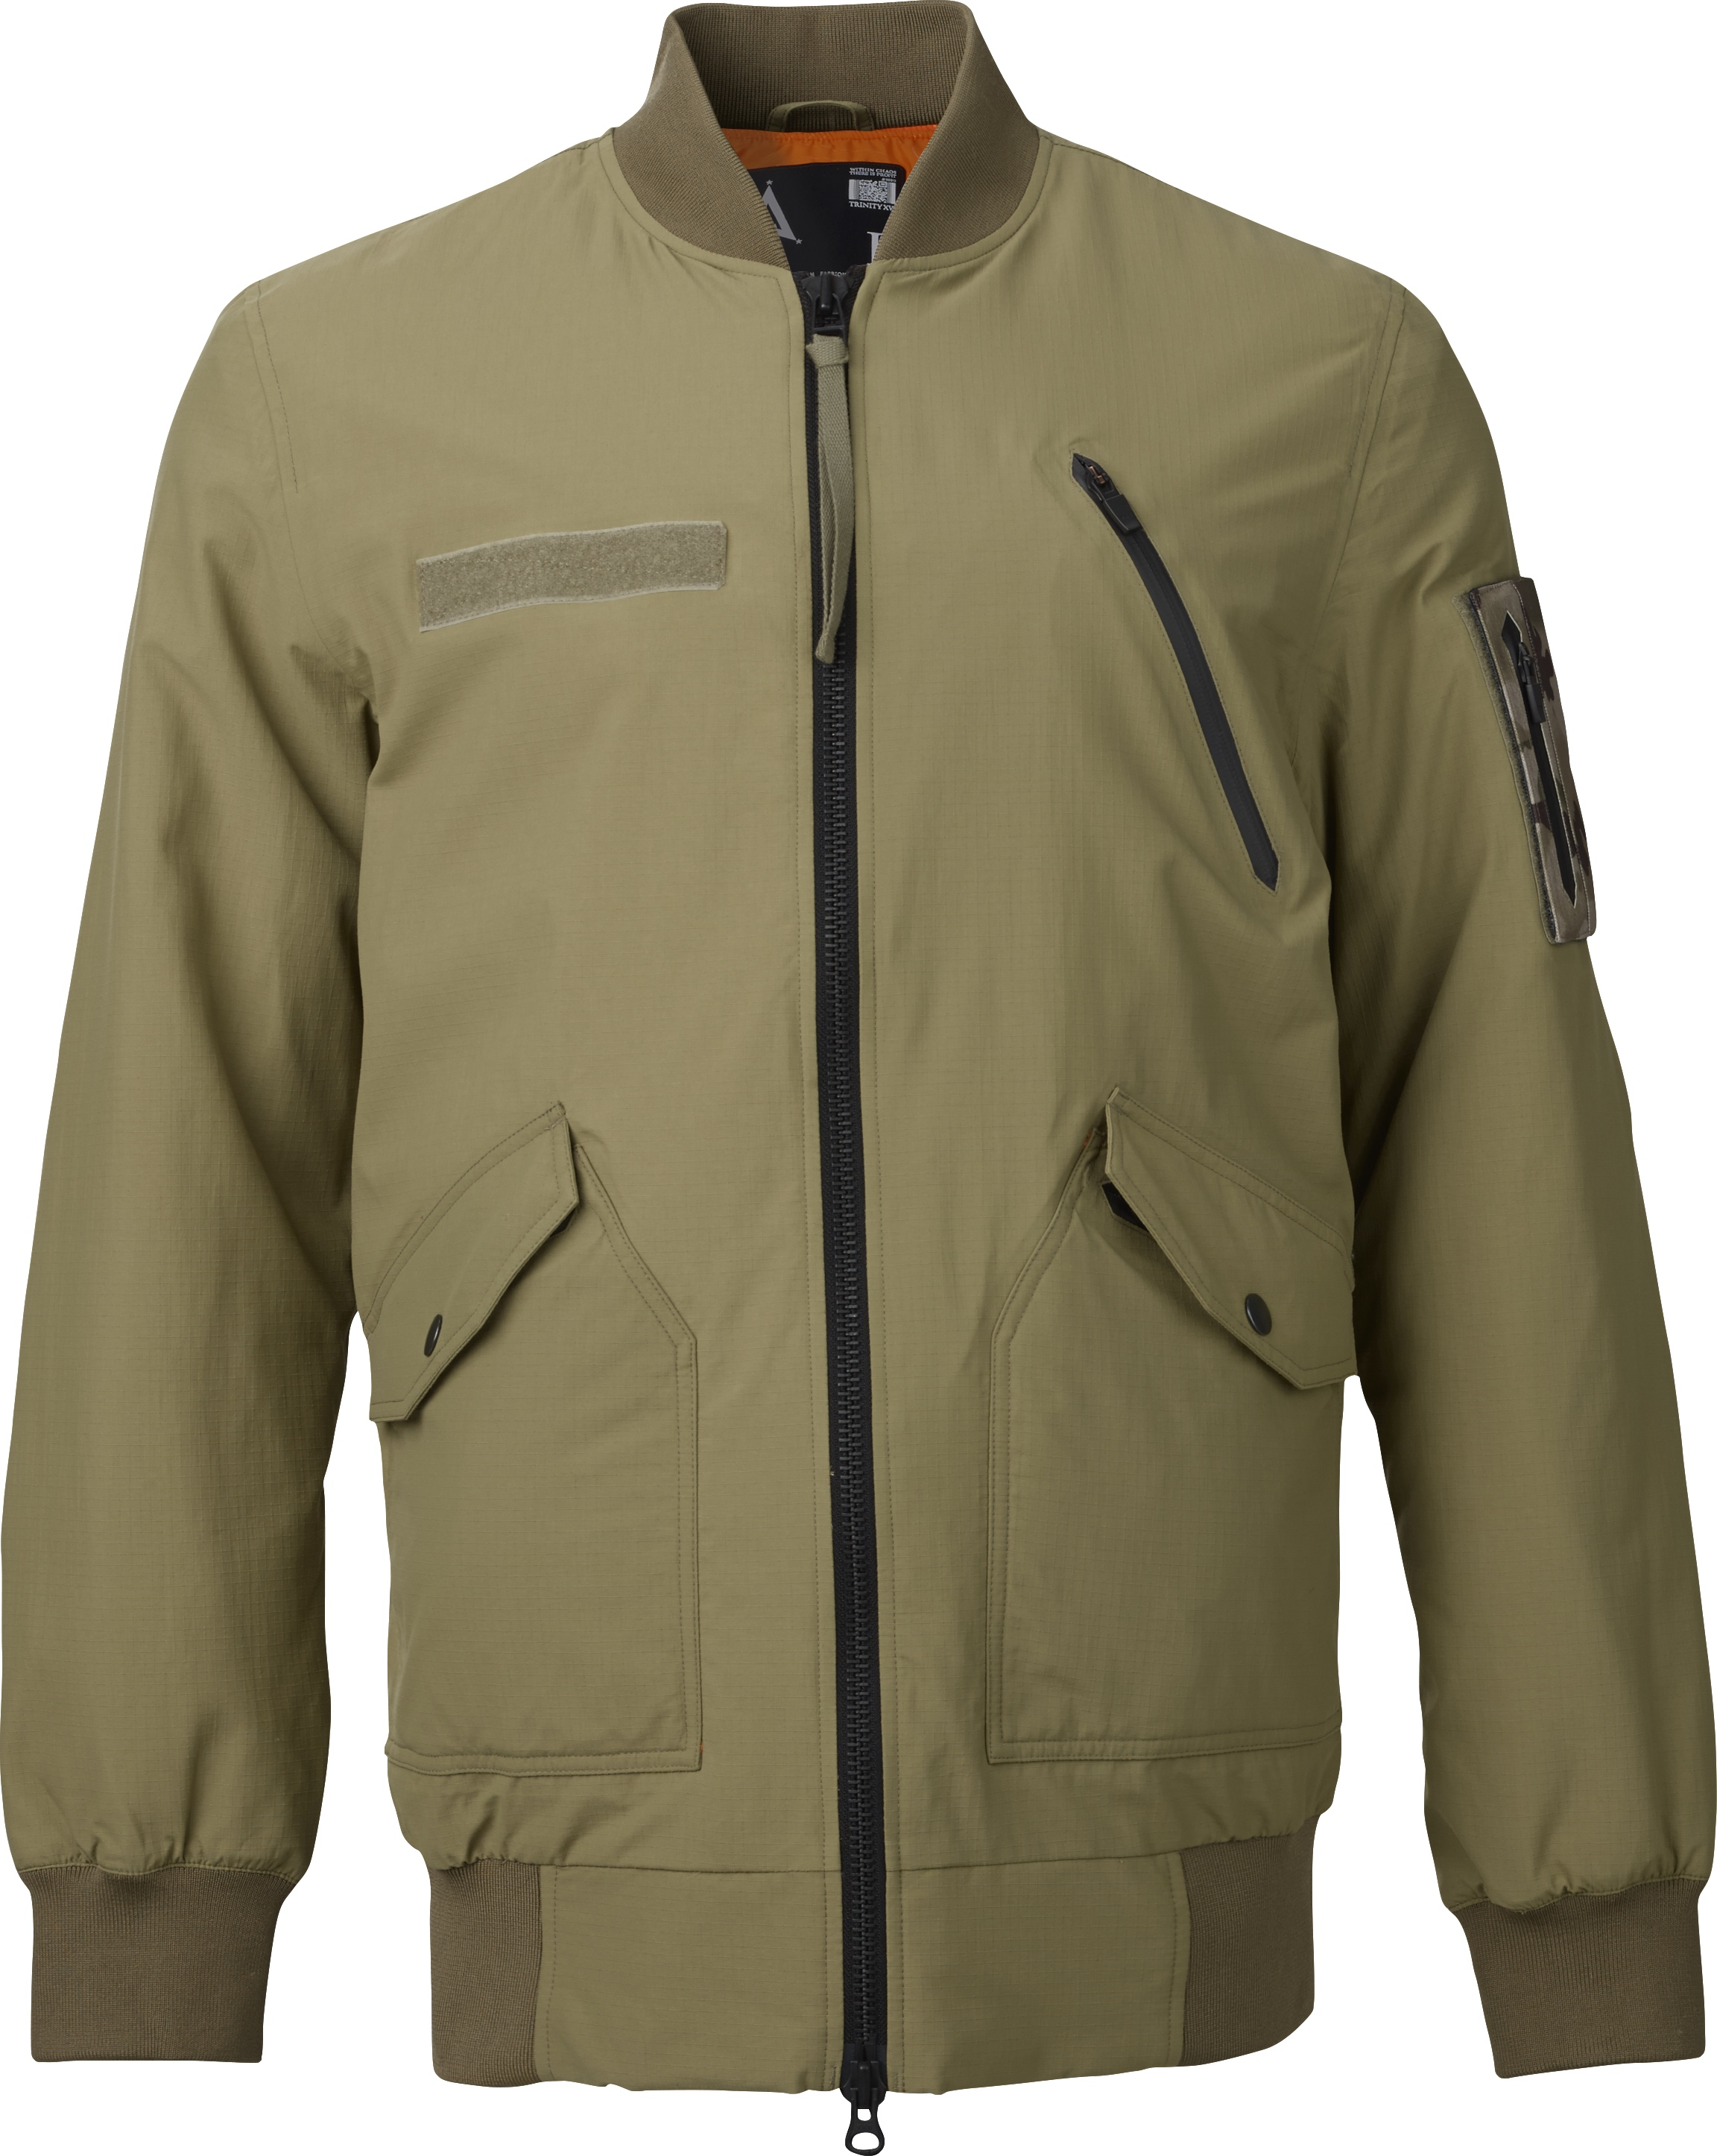 Burton x UNDEFEATED x Alpha Industries MA-1 Flight Jacket, $250